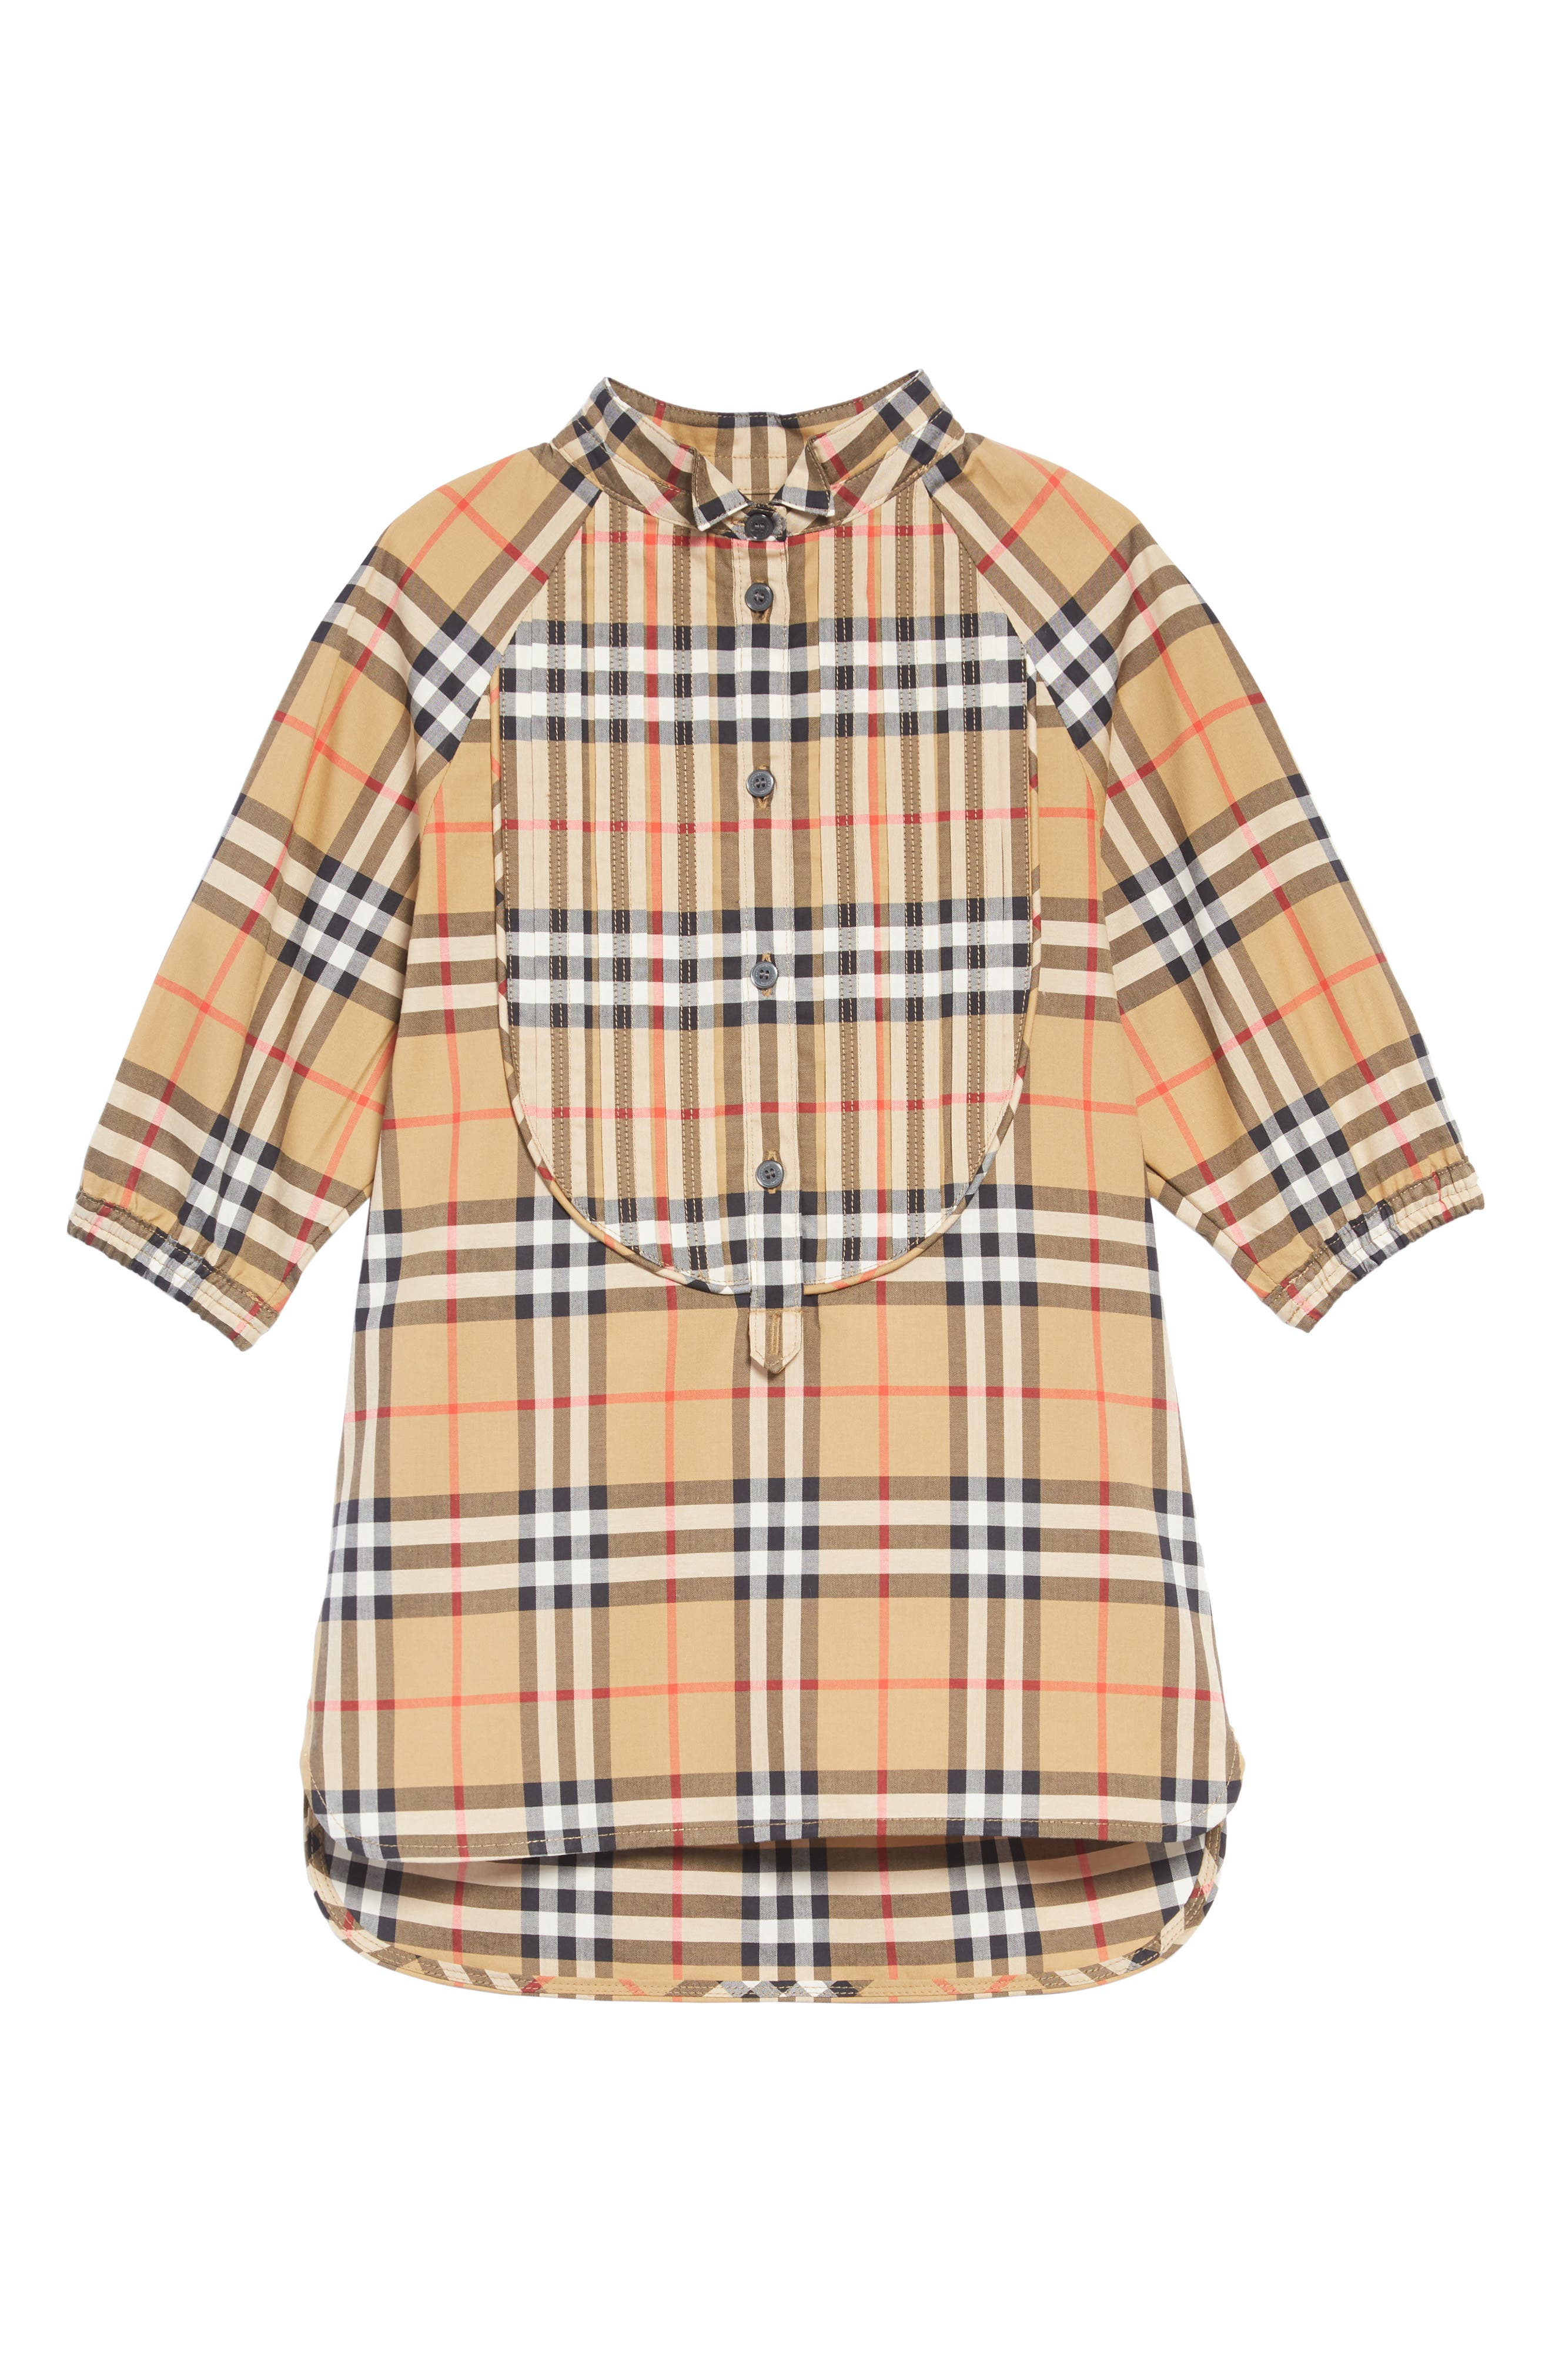 BURBERRY, Elodie Vintage Check Shirtdress, Main thumbnail 1, color, ANTIQUE YELLOW